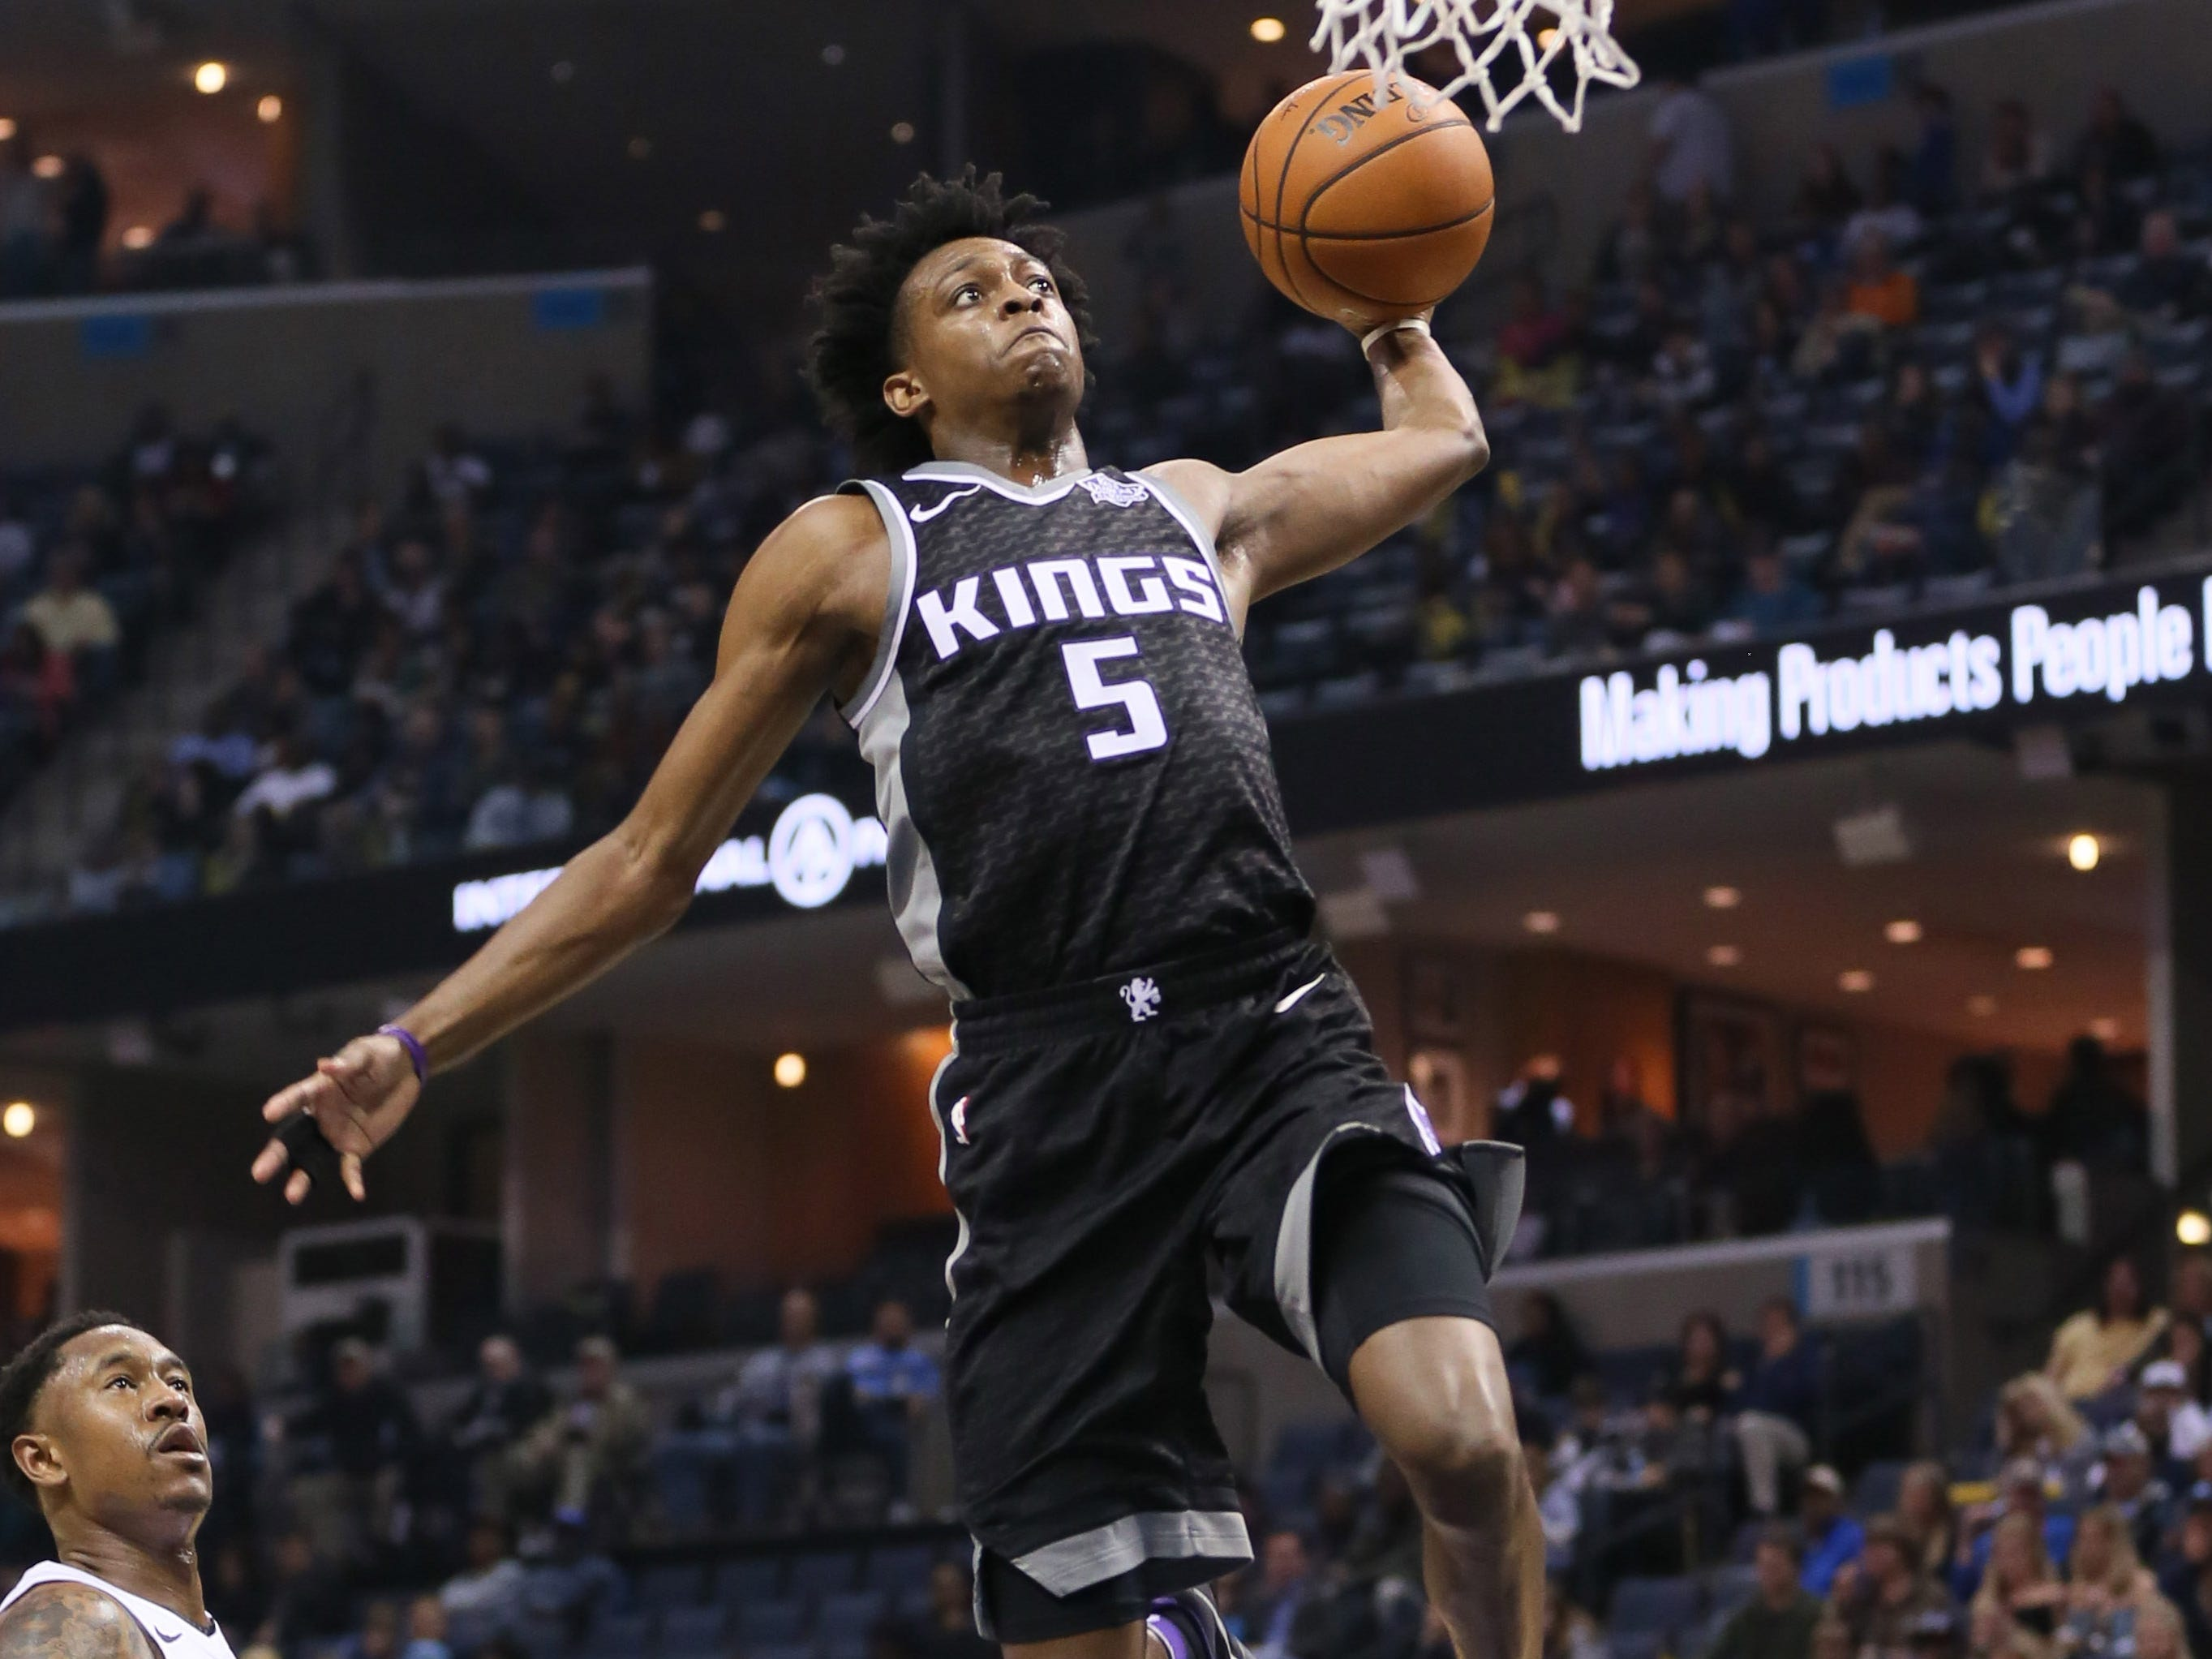 De'Aaron Fox, Sacramento Kings — 21 (born 12/20/1997)